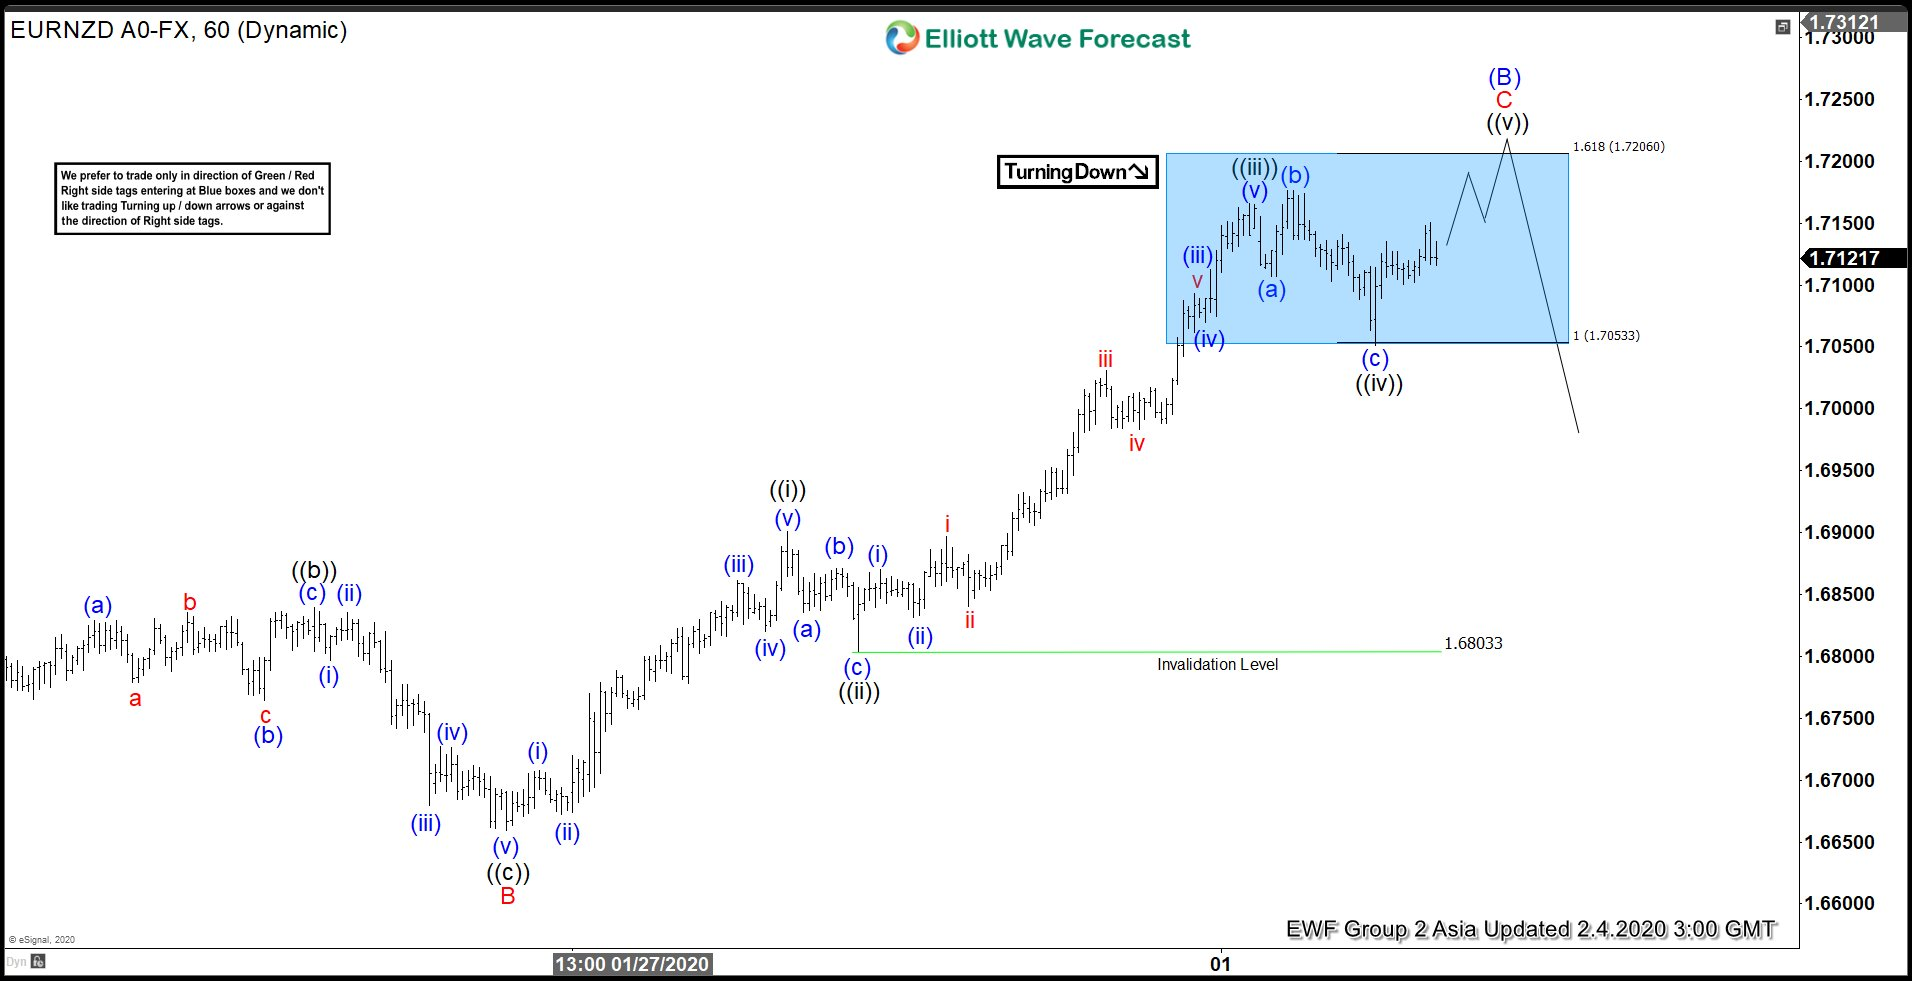 EURNZD Forecasting The Decline Using Elliott Wave Theory